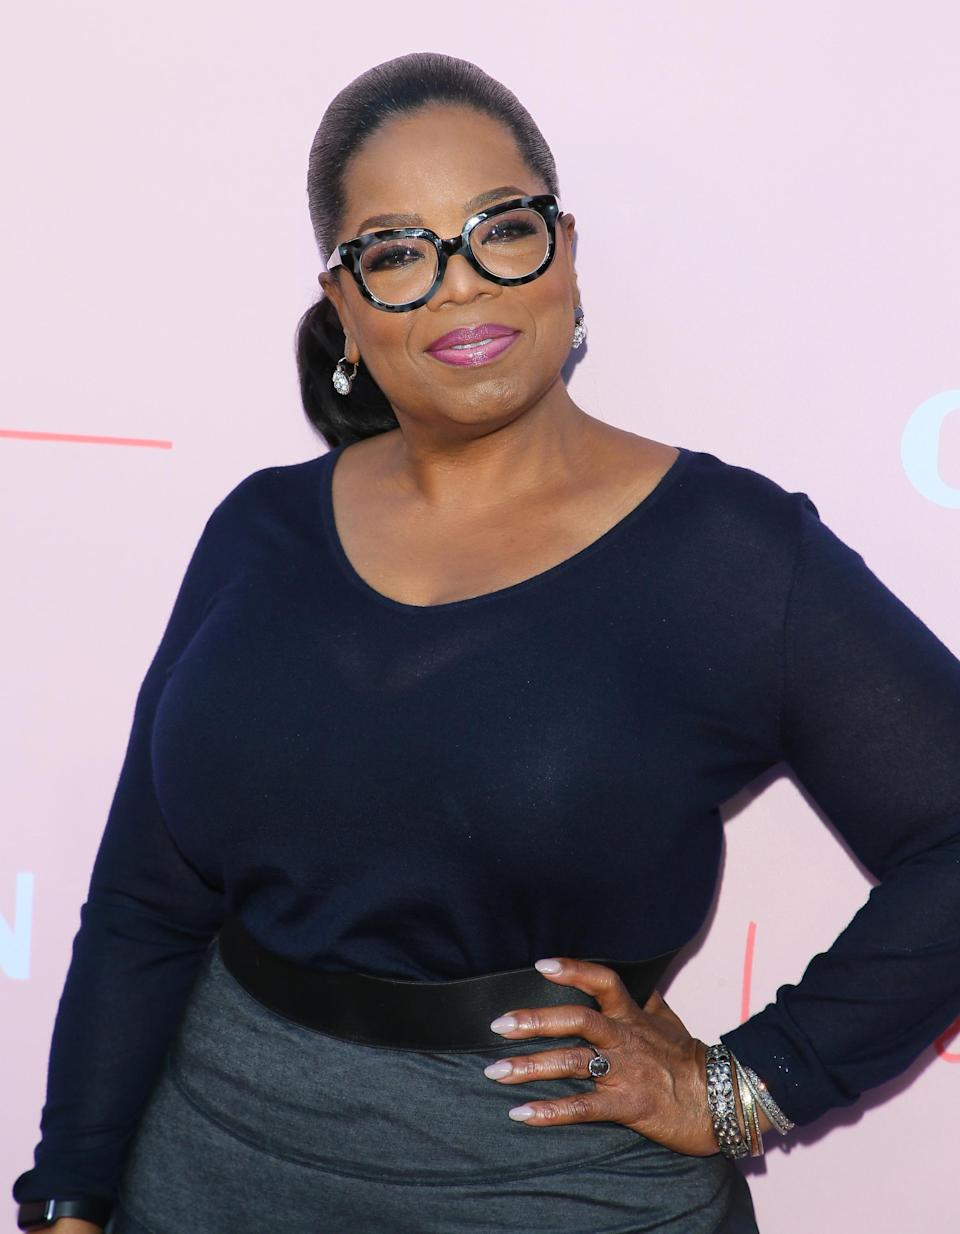 Oprah Winfrey appears to be a friend of the royal family. [Photo: Getty]